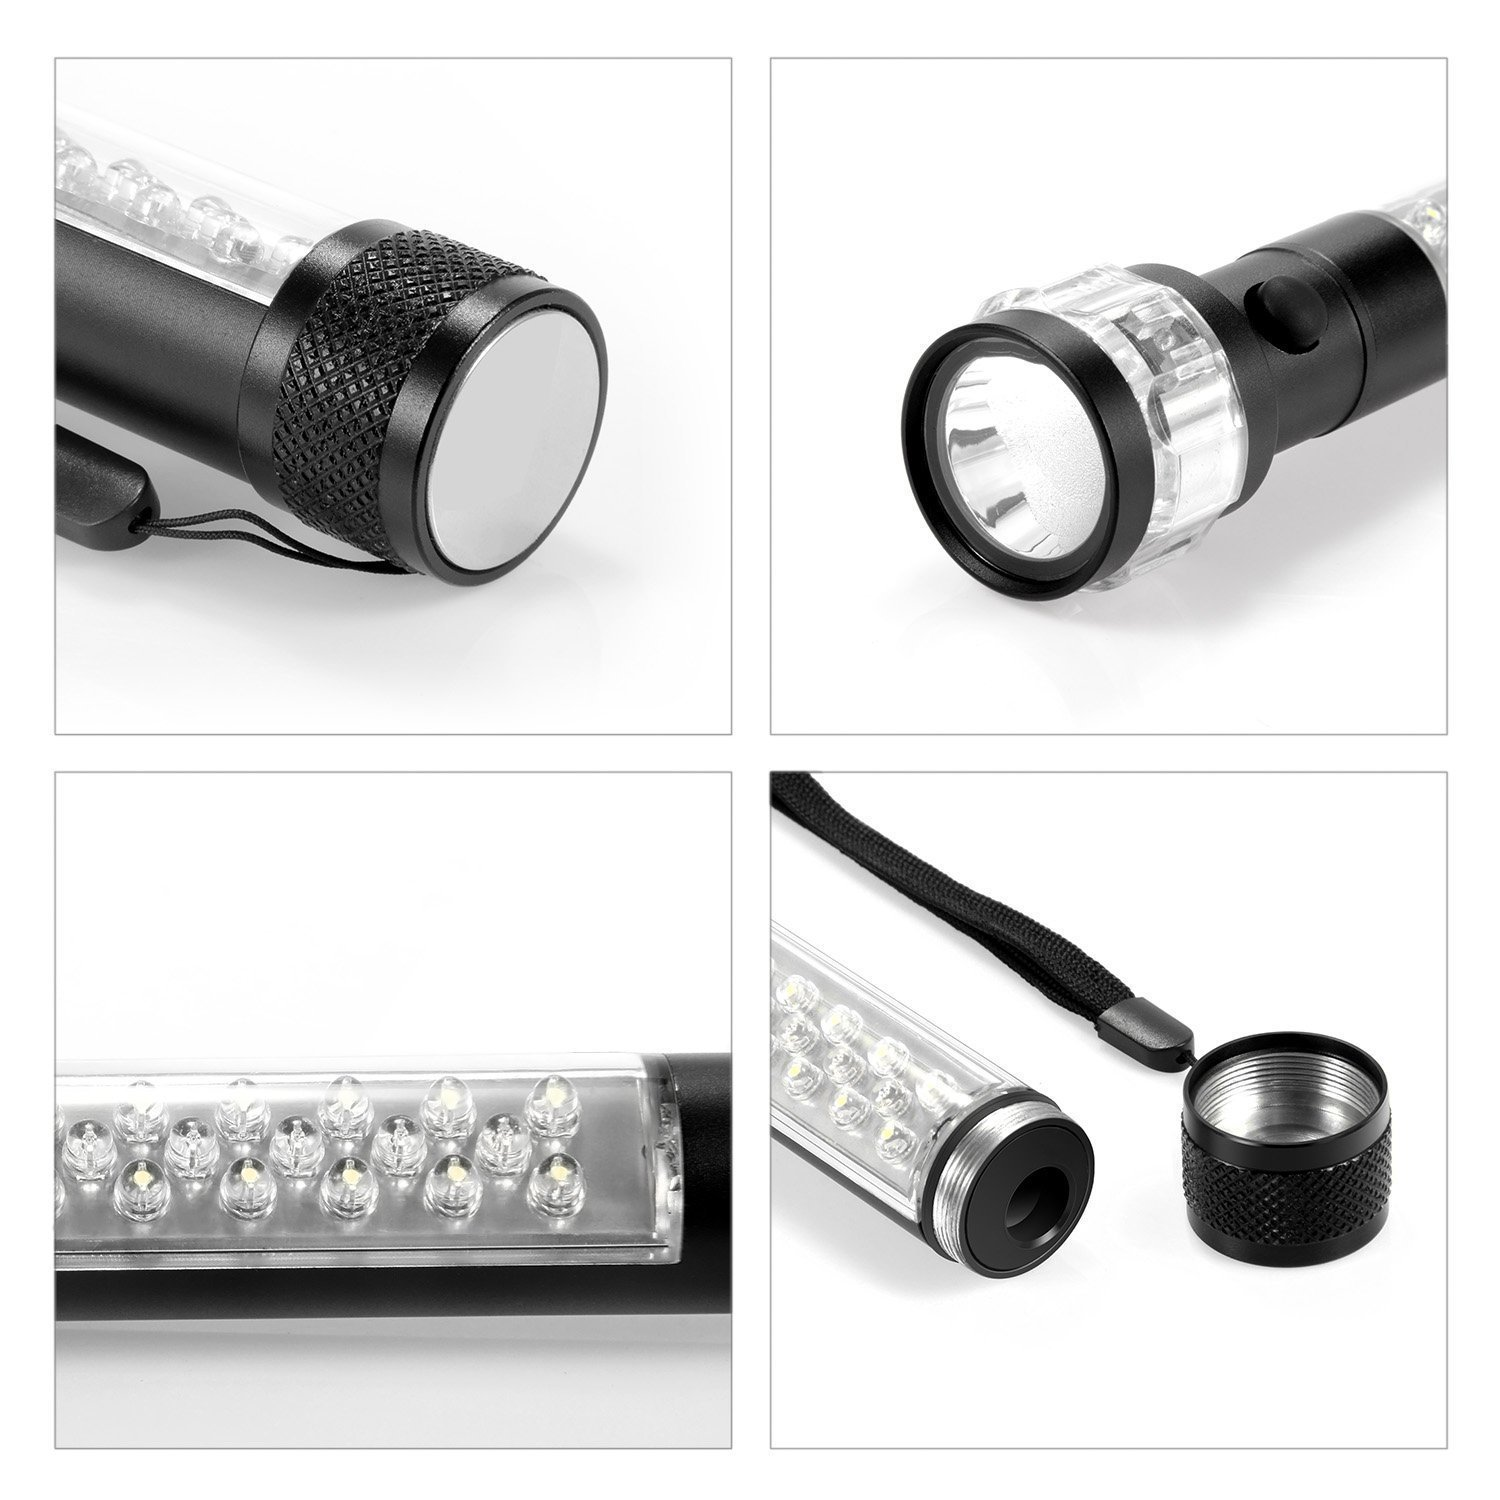 Oxyled Emergency Flashlight 6.jpg